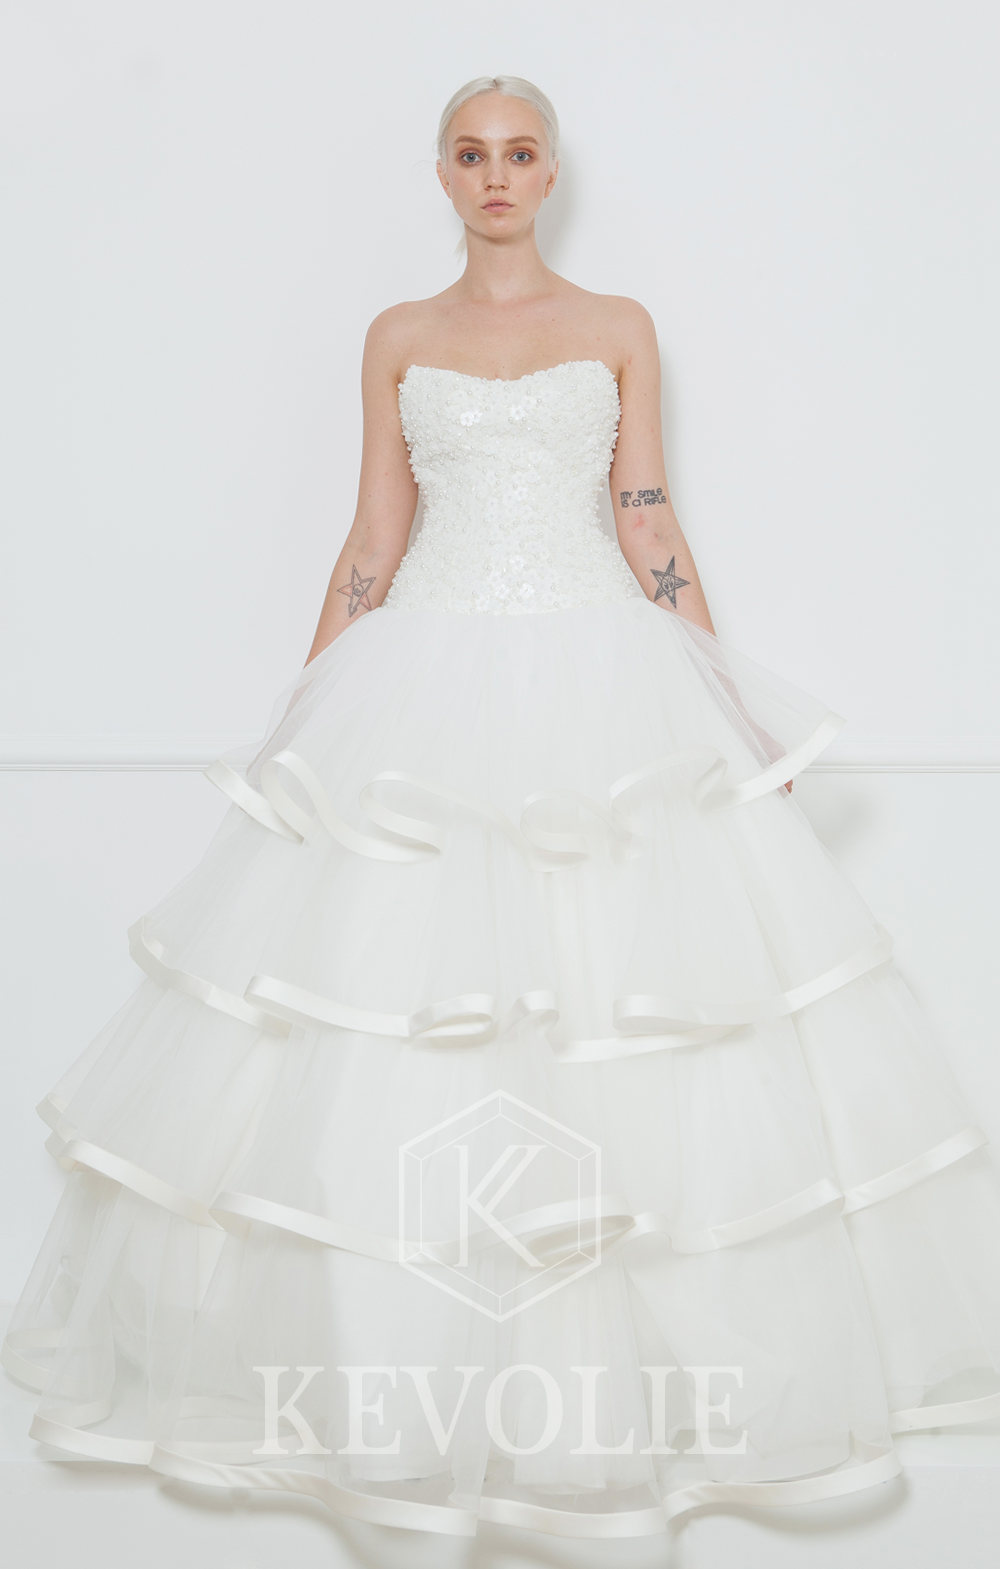 BRIDAL COLLECTION 2015-LOOK 21